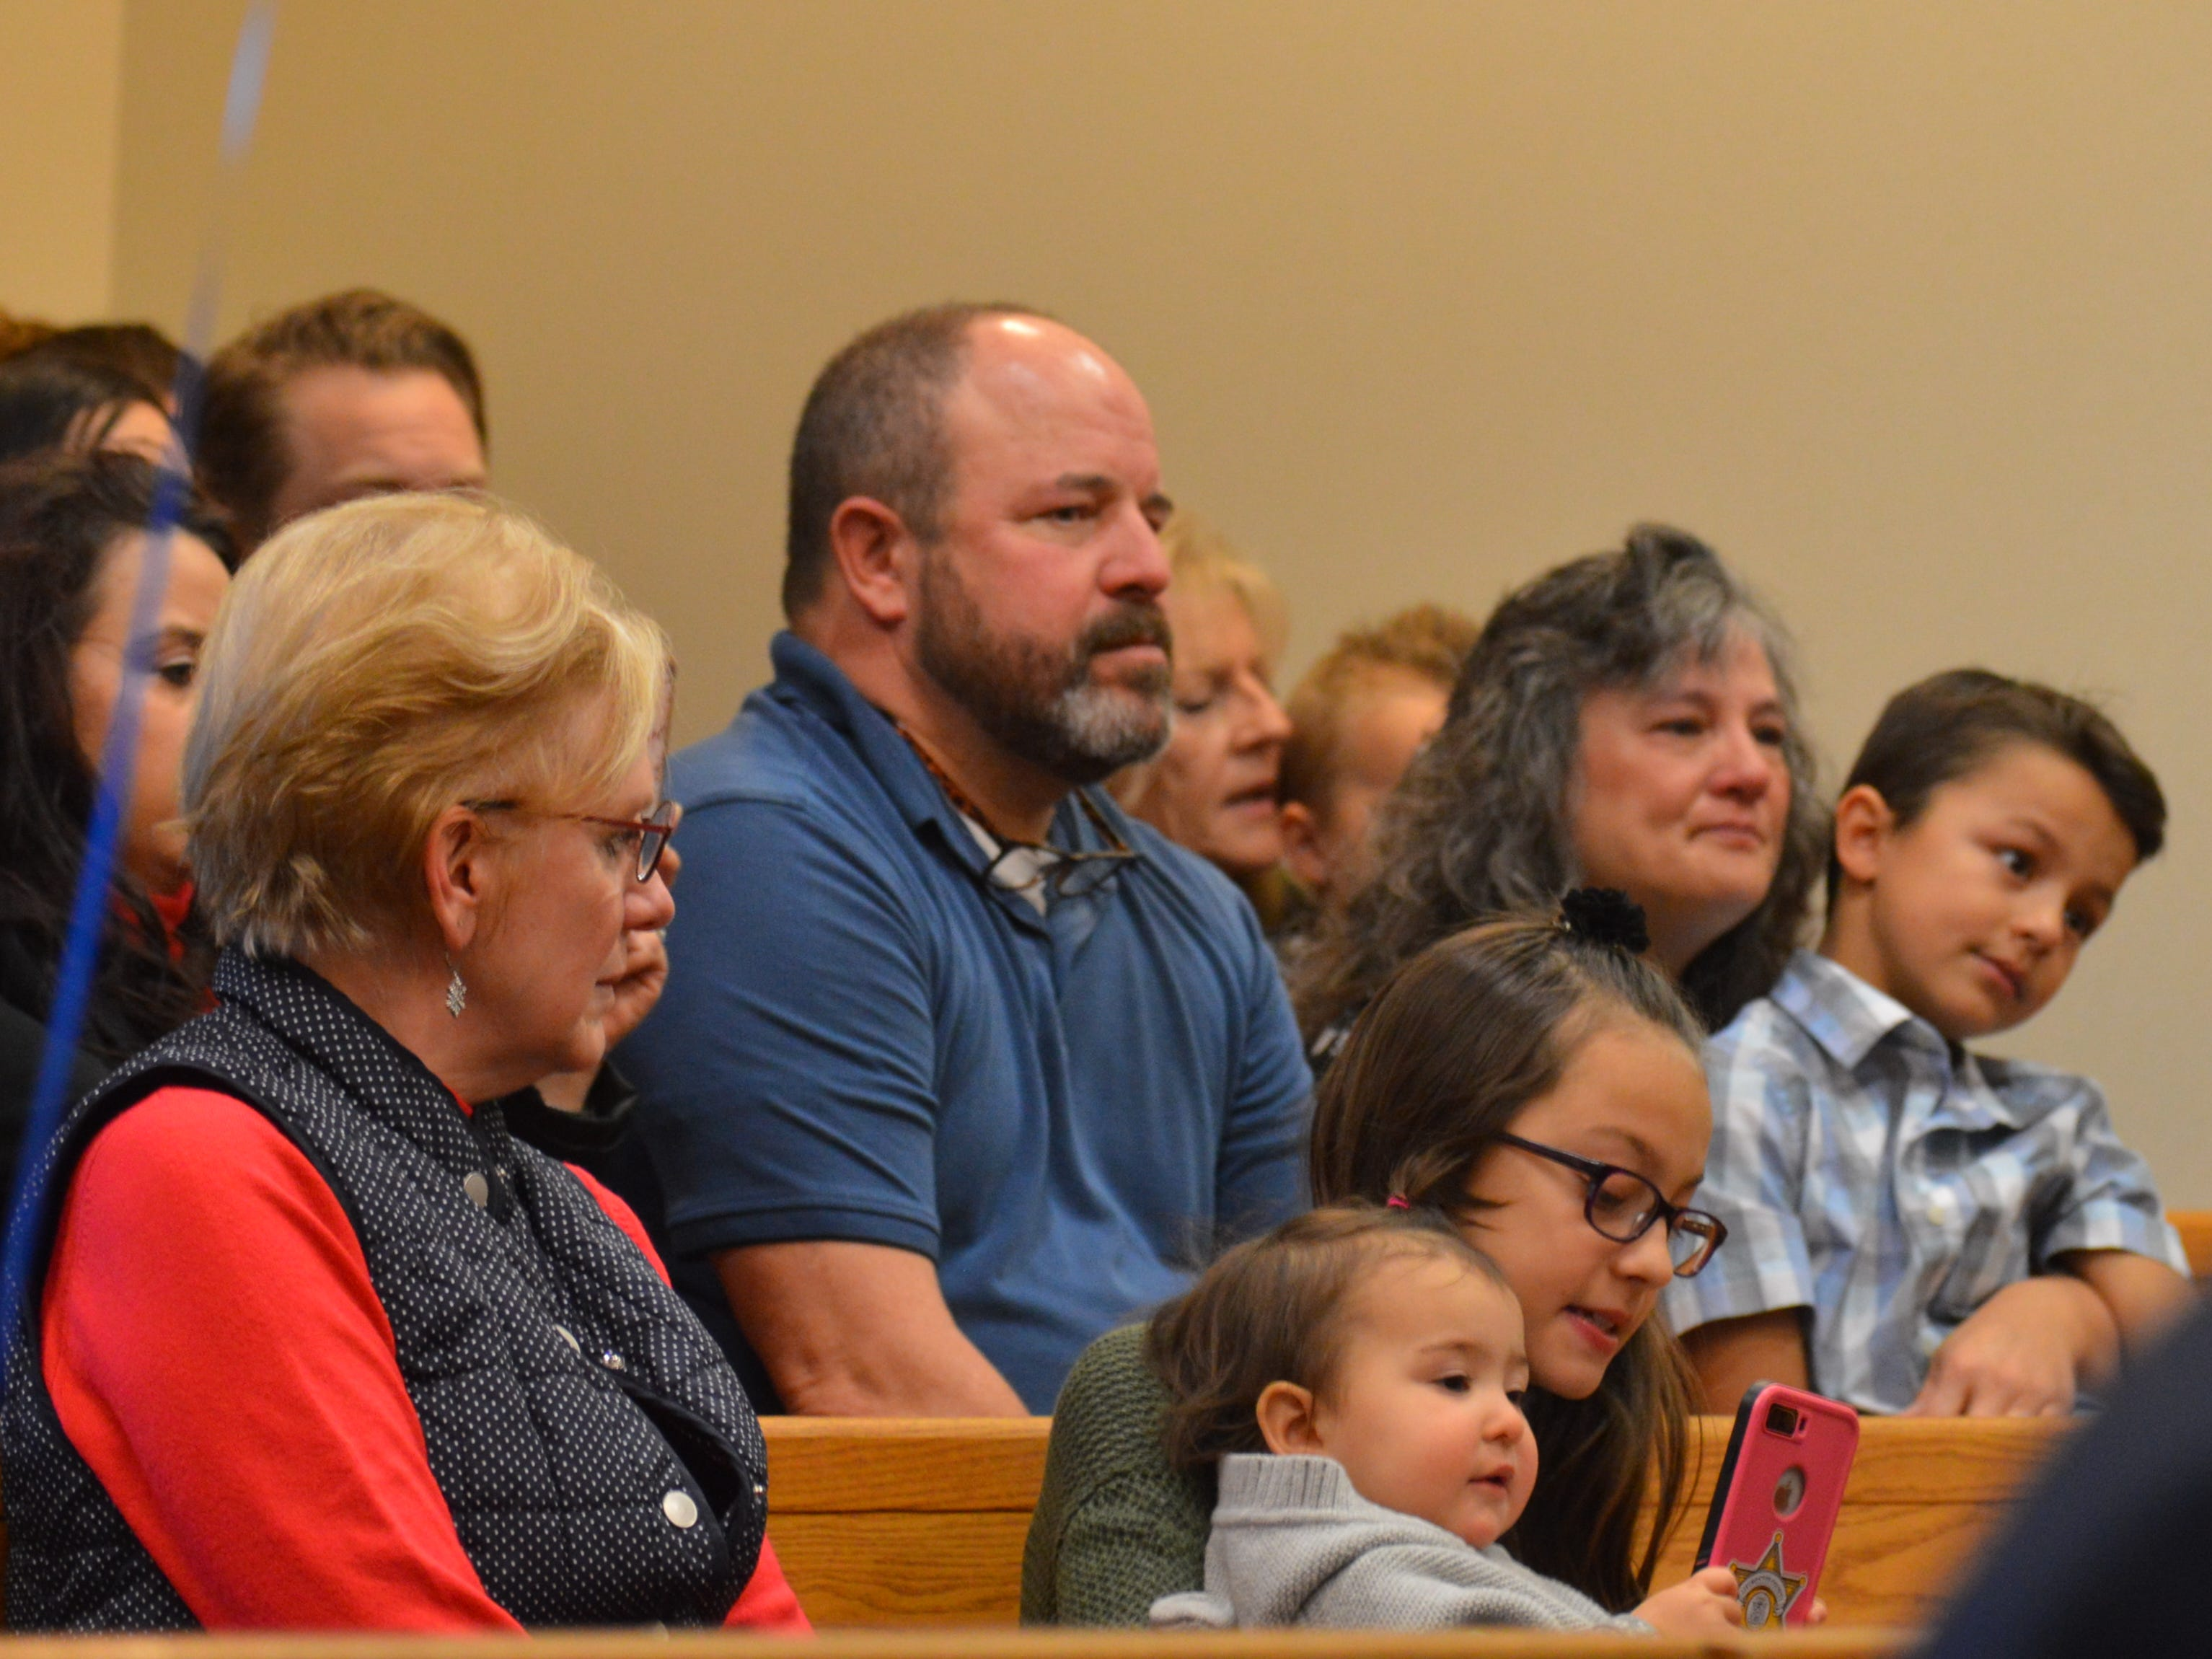 Family of Danielle and David Elliot watch as the couple gains two more kids on Nov. 20, 2018.